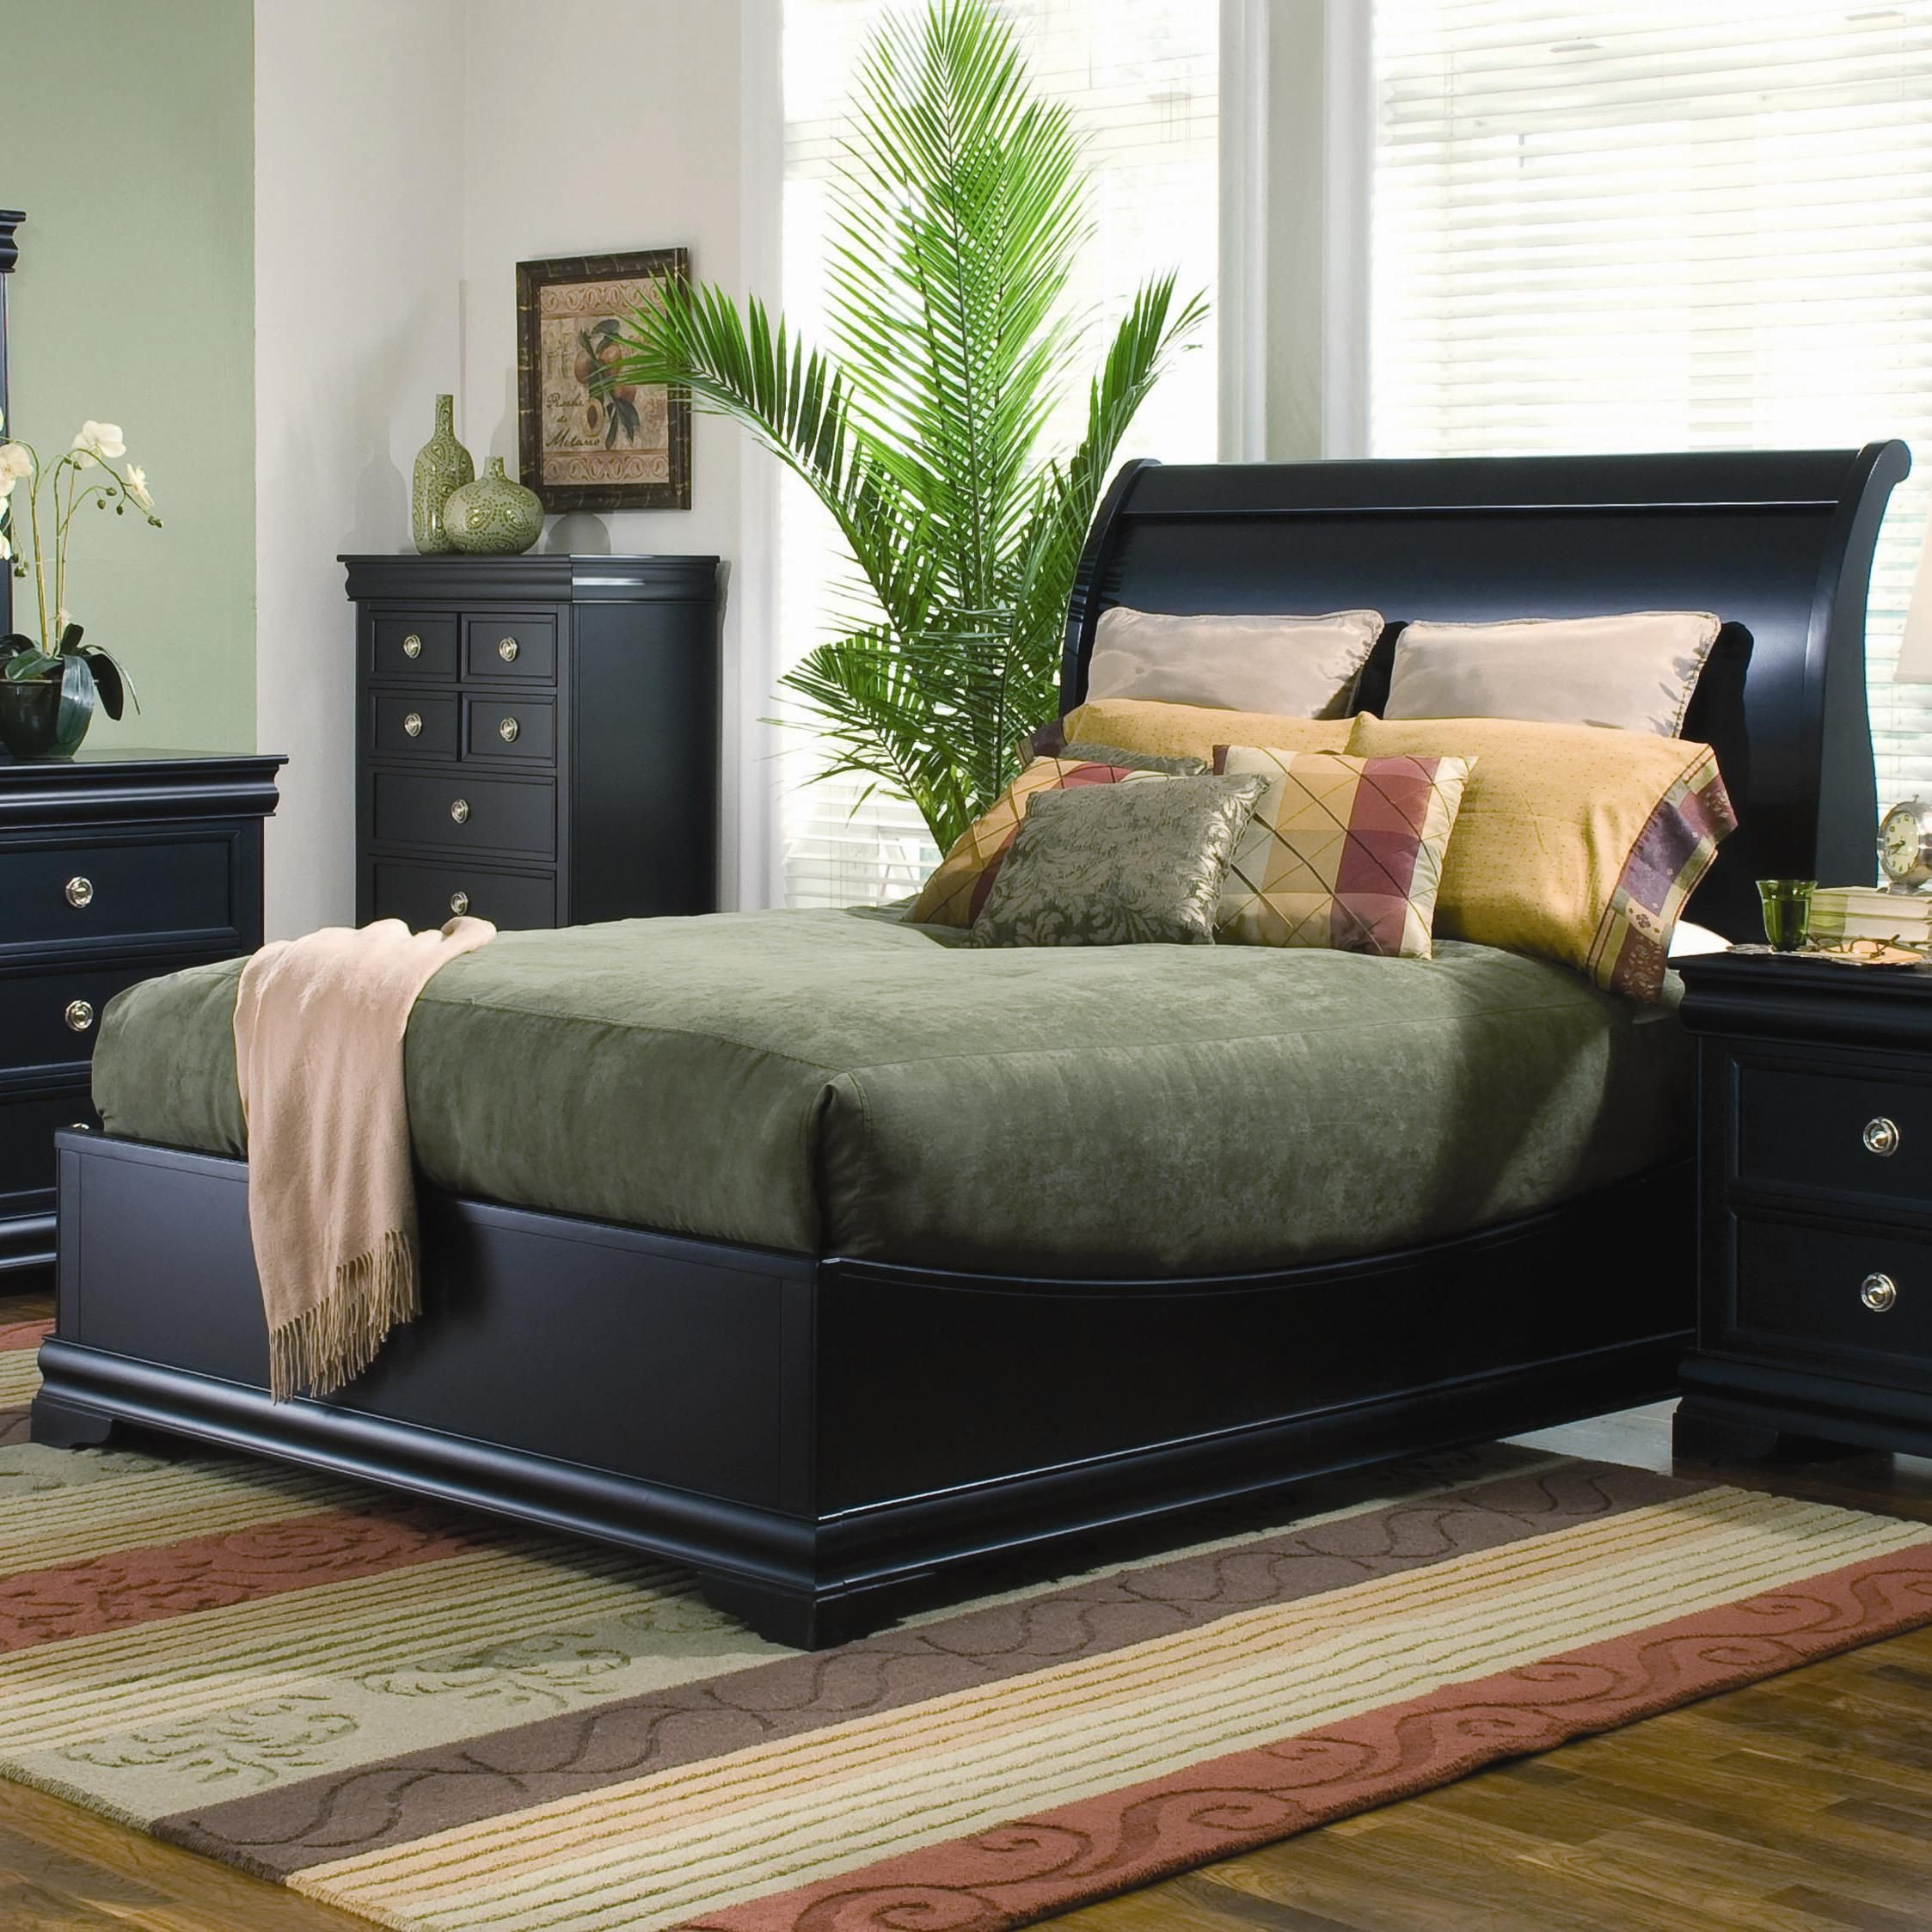 Bedroom Bench with Back Lovely Swept Back with Low Profile Footboard An Updated Sleigh Bed